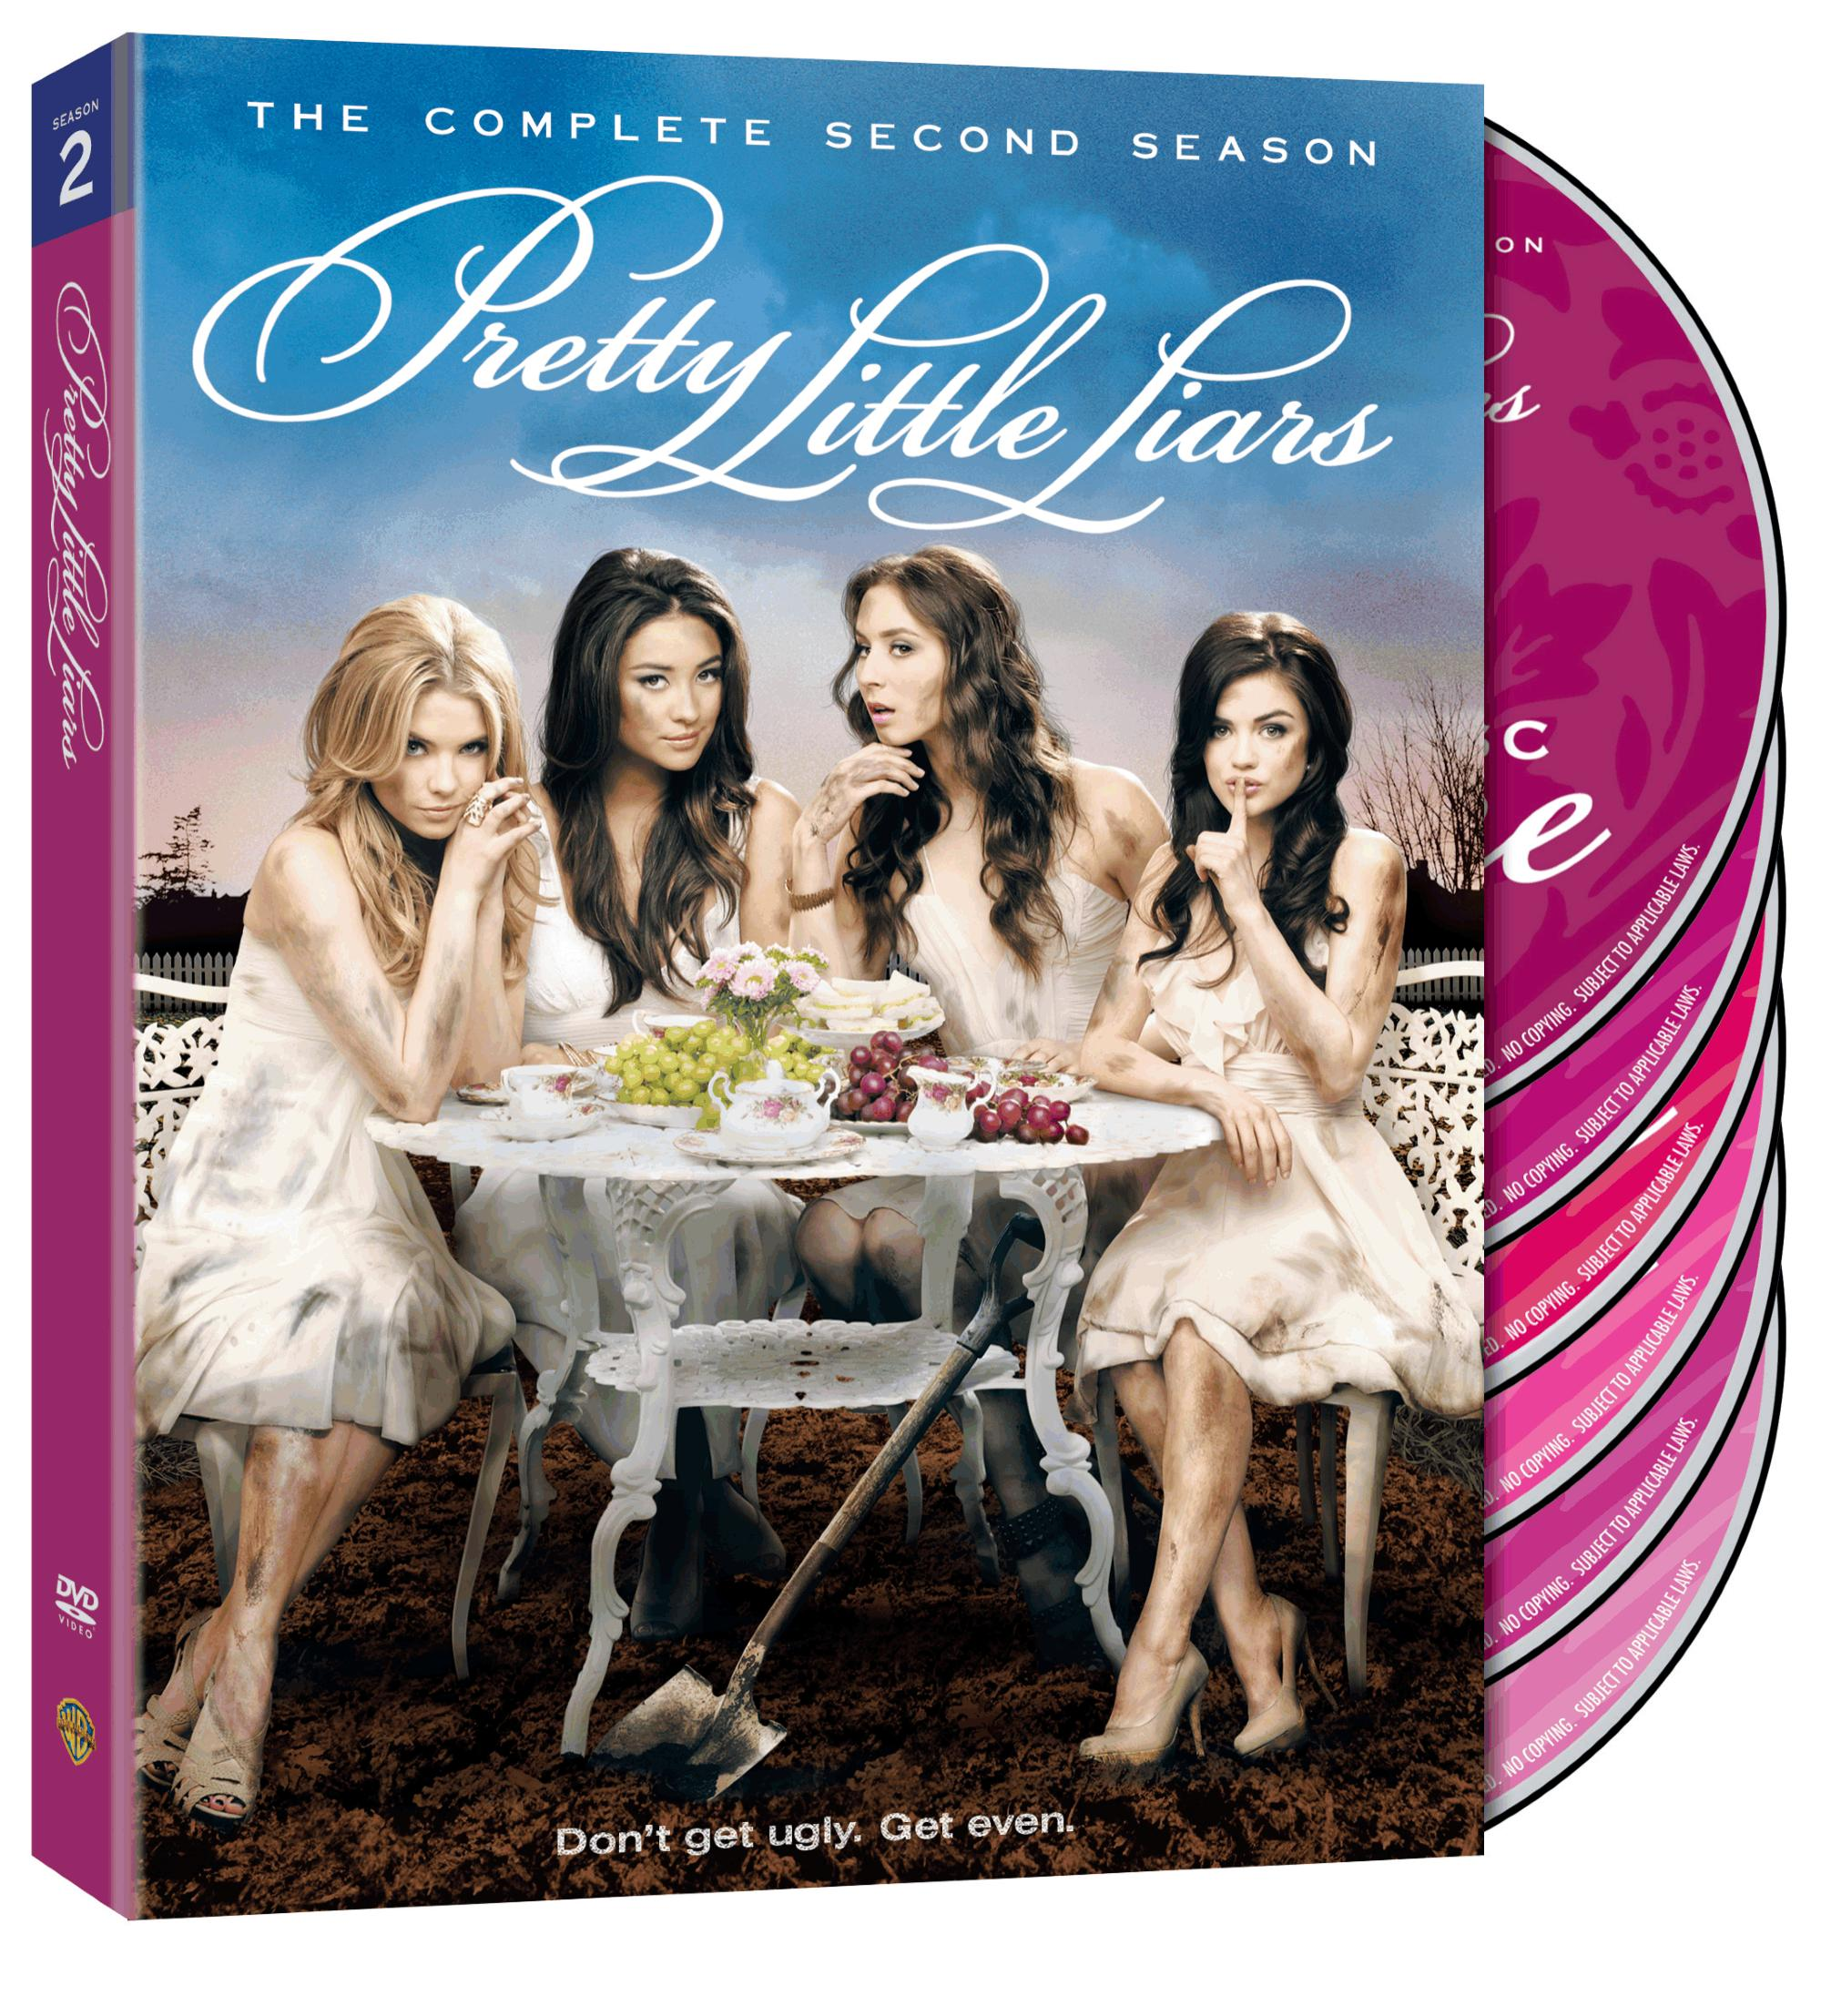 Pretty little liars table read sweepstakes and giveaways